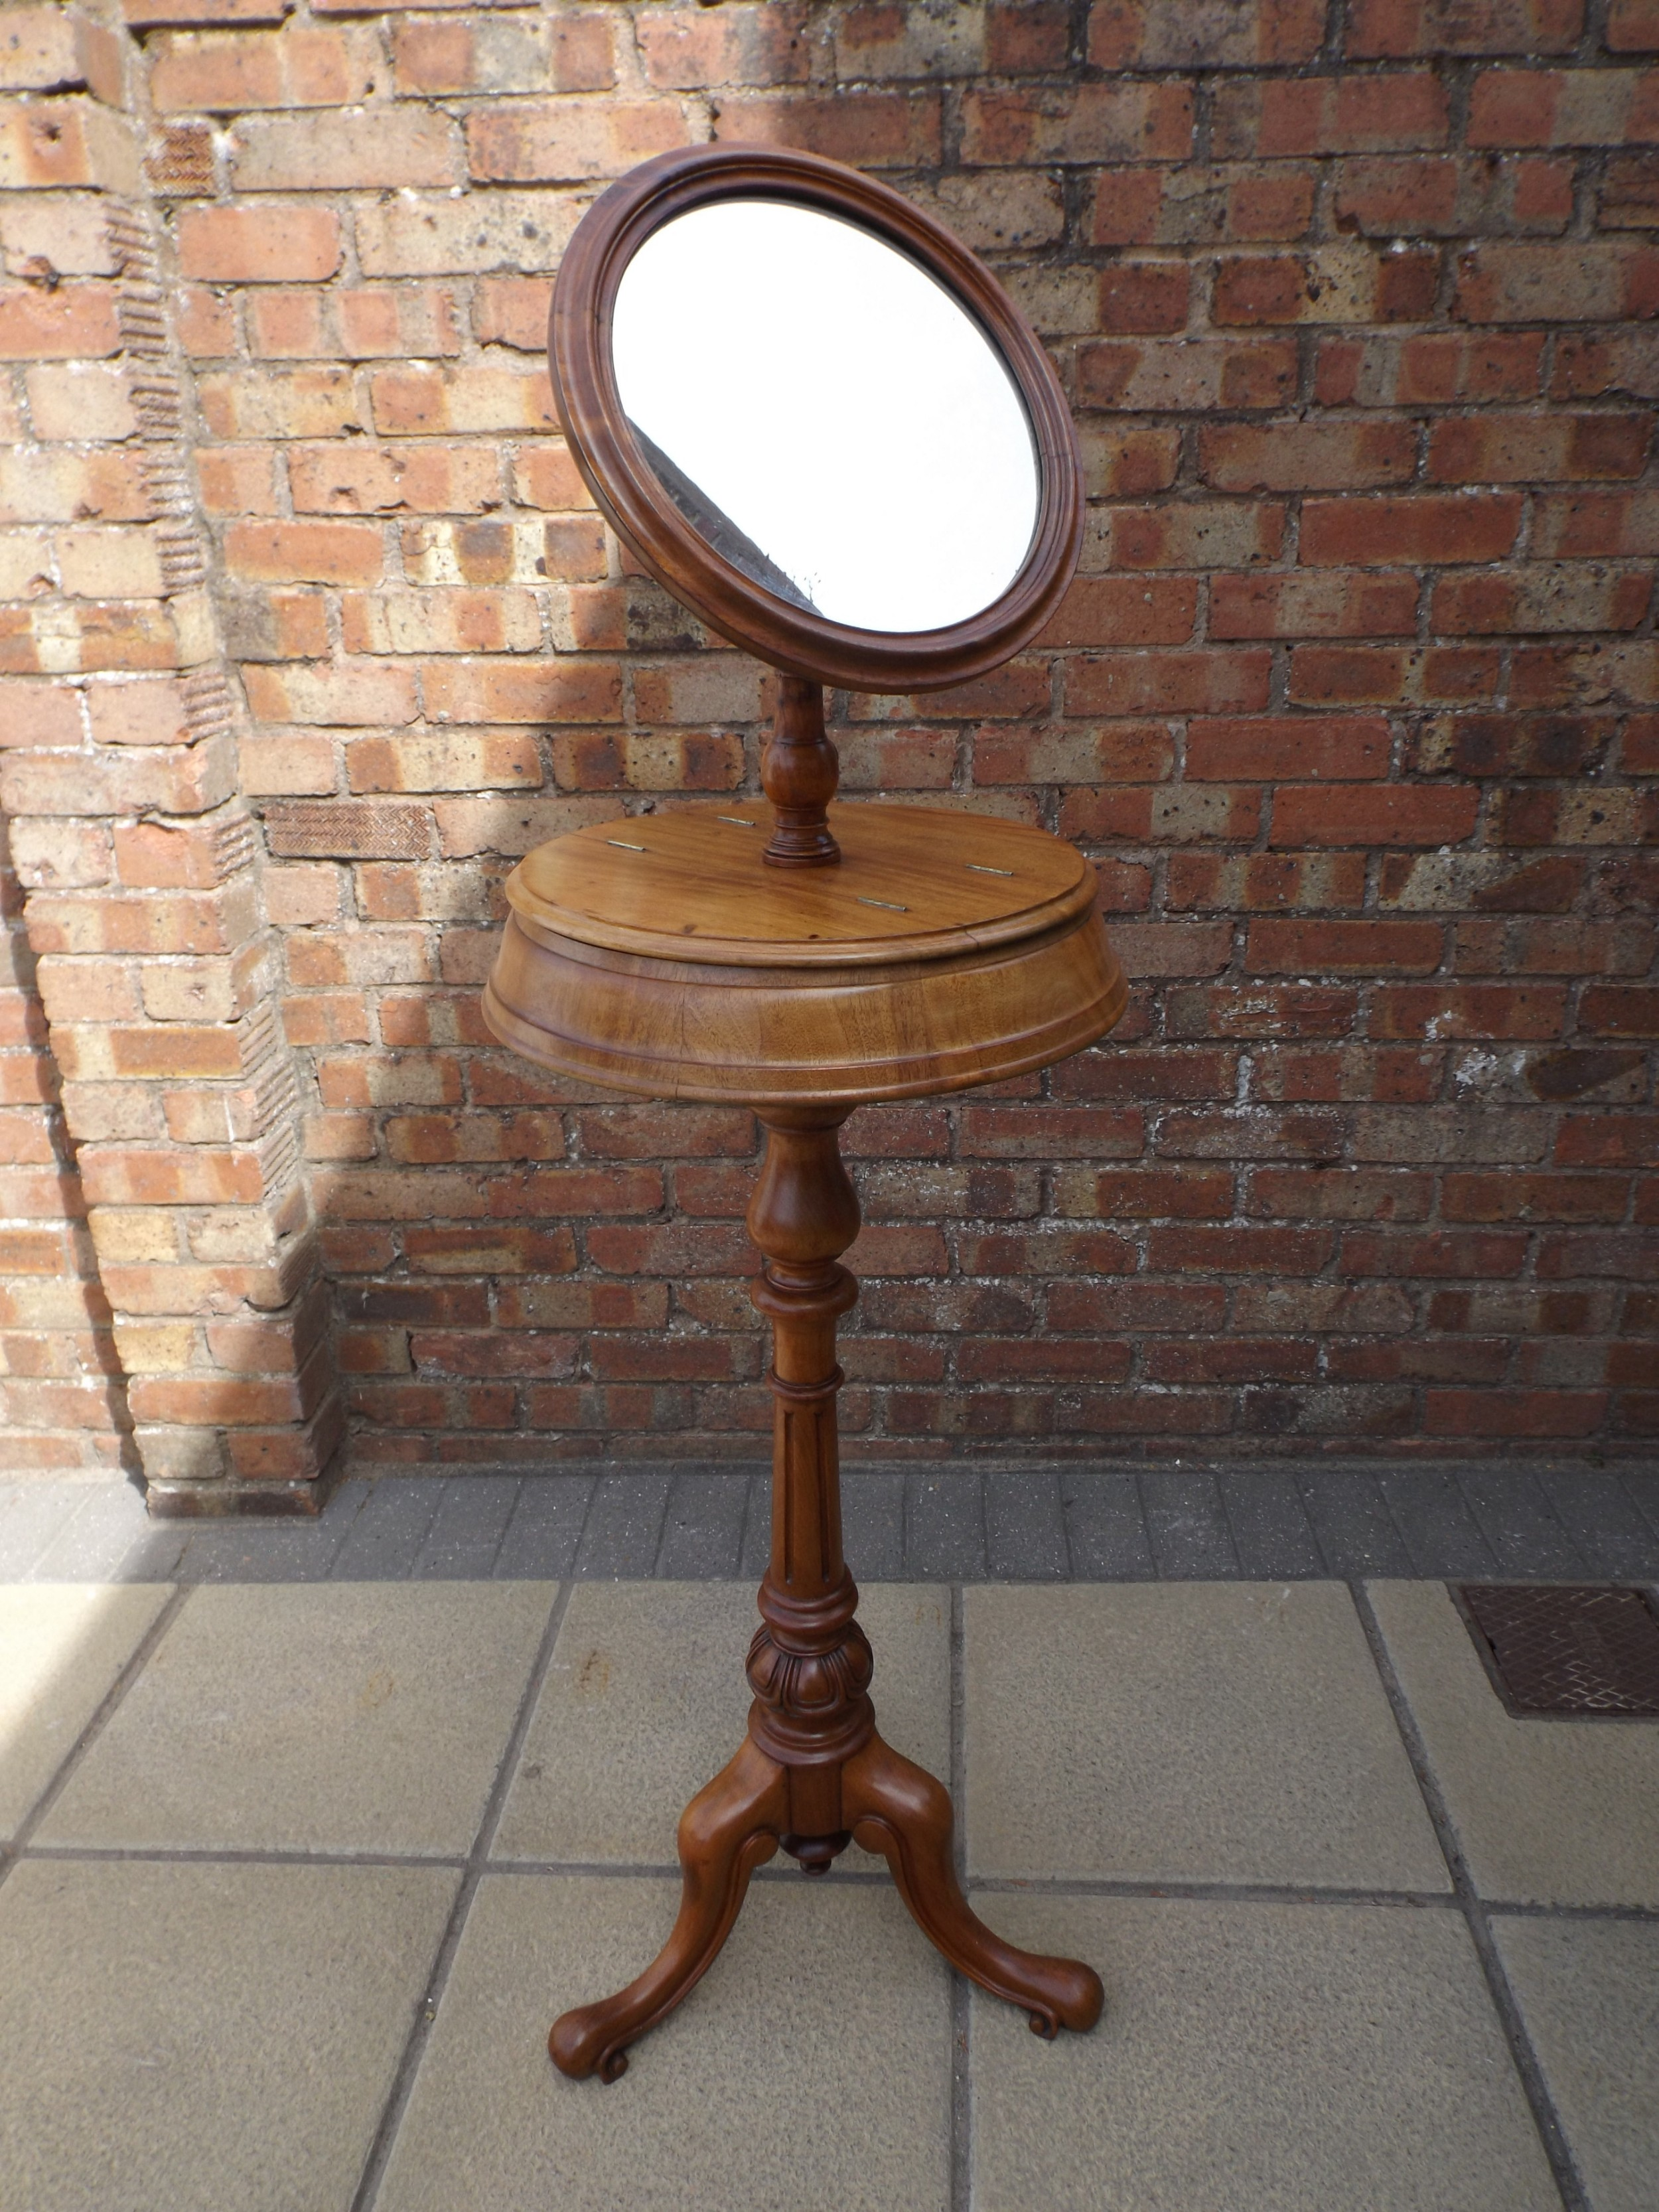 c1870 gentleman's dressing stand in mahogany